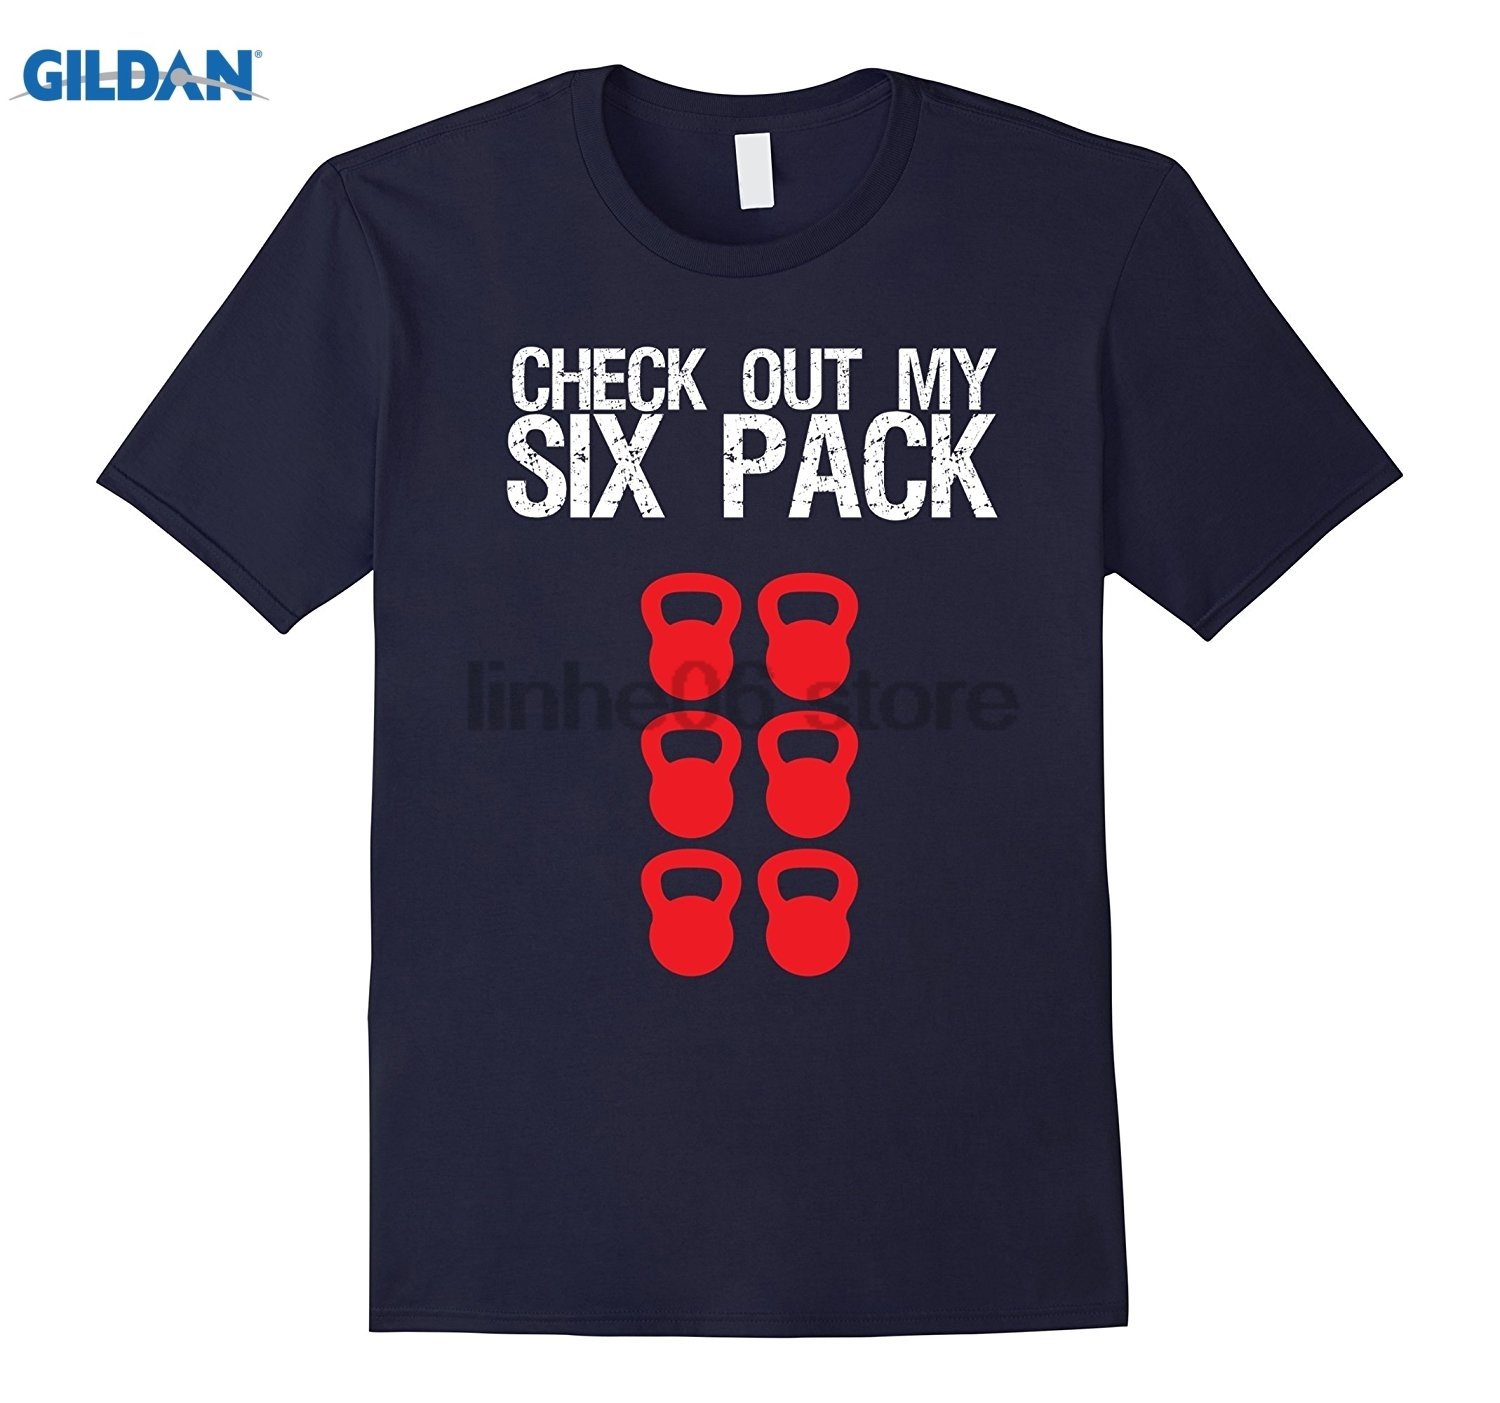 GILDAN Check Out My 6 Pack Cross Fit T-Shirt Funny Workout Fitness Mothers Day Ms. T-shi ...